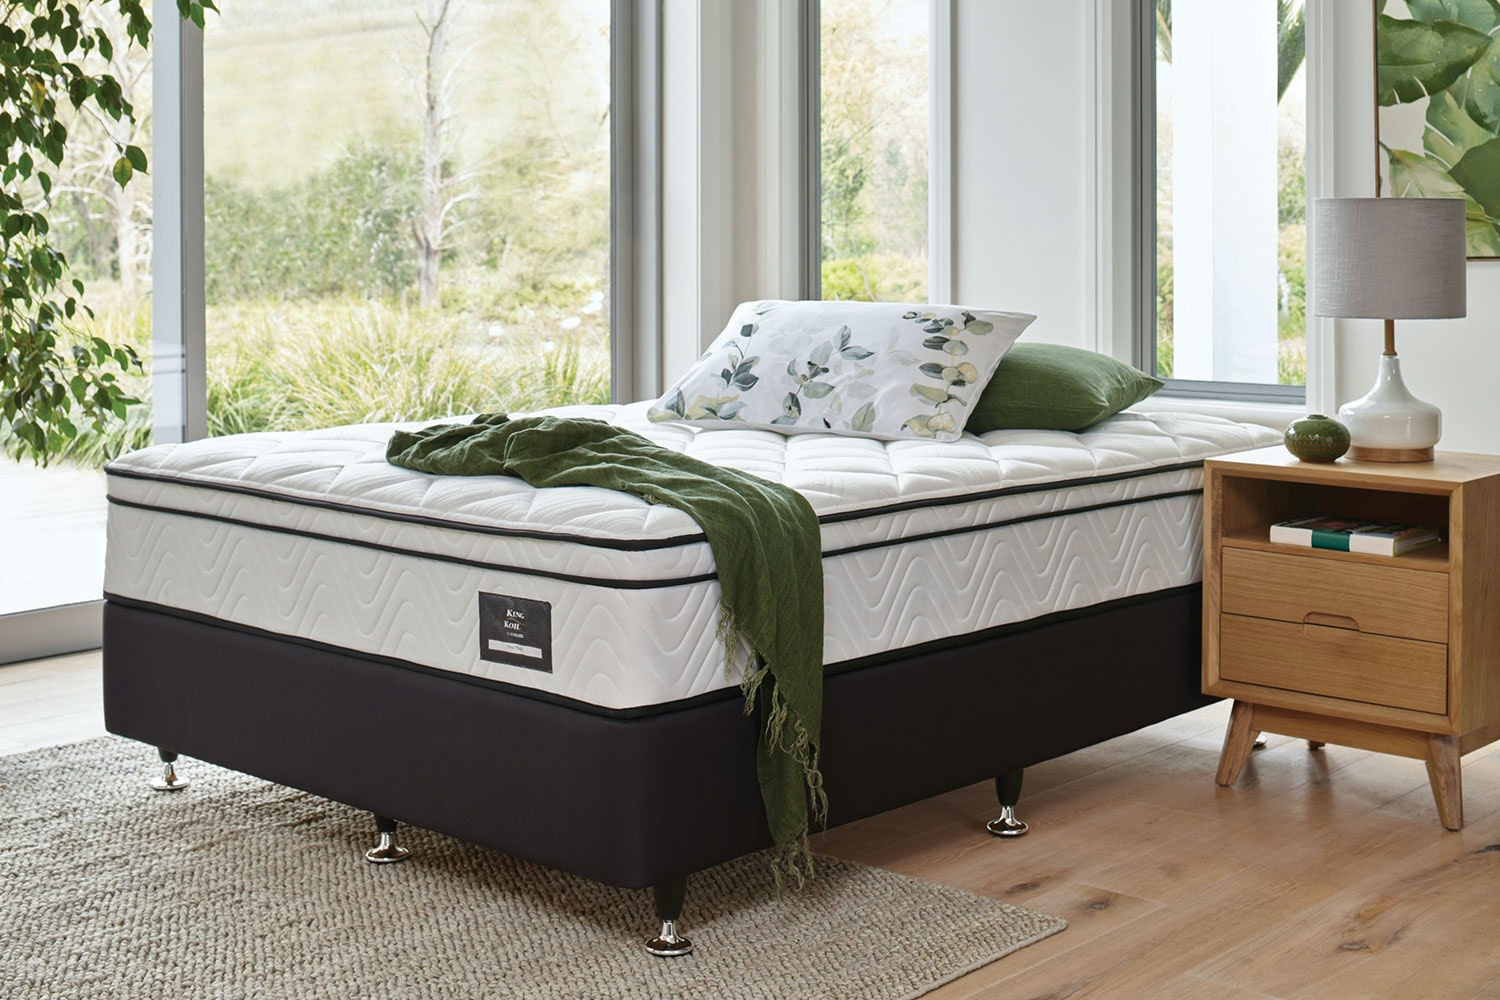 Viva Plush Long Single Bed By King Koil